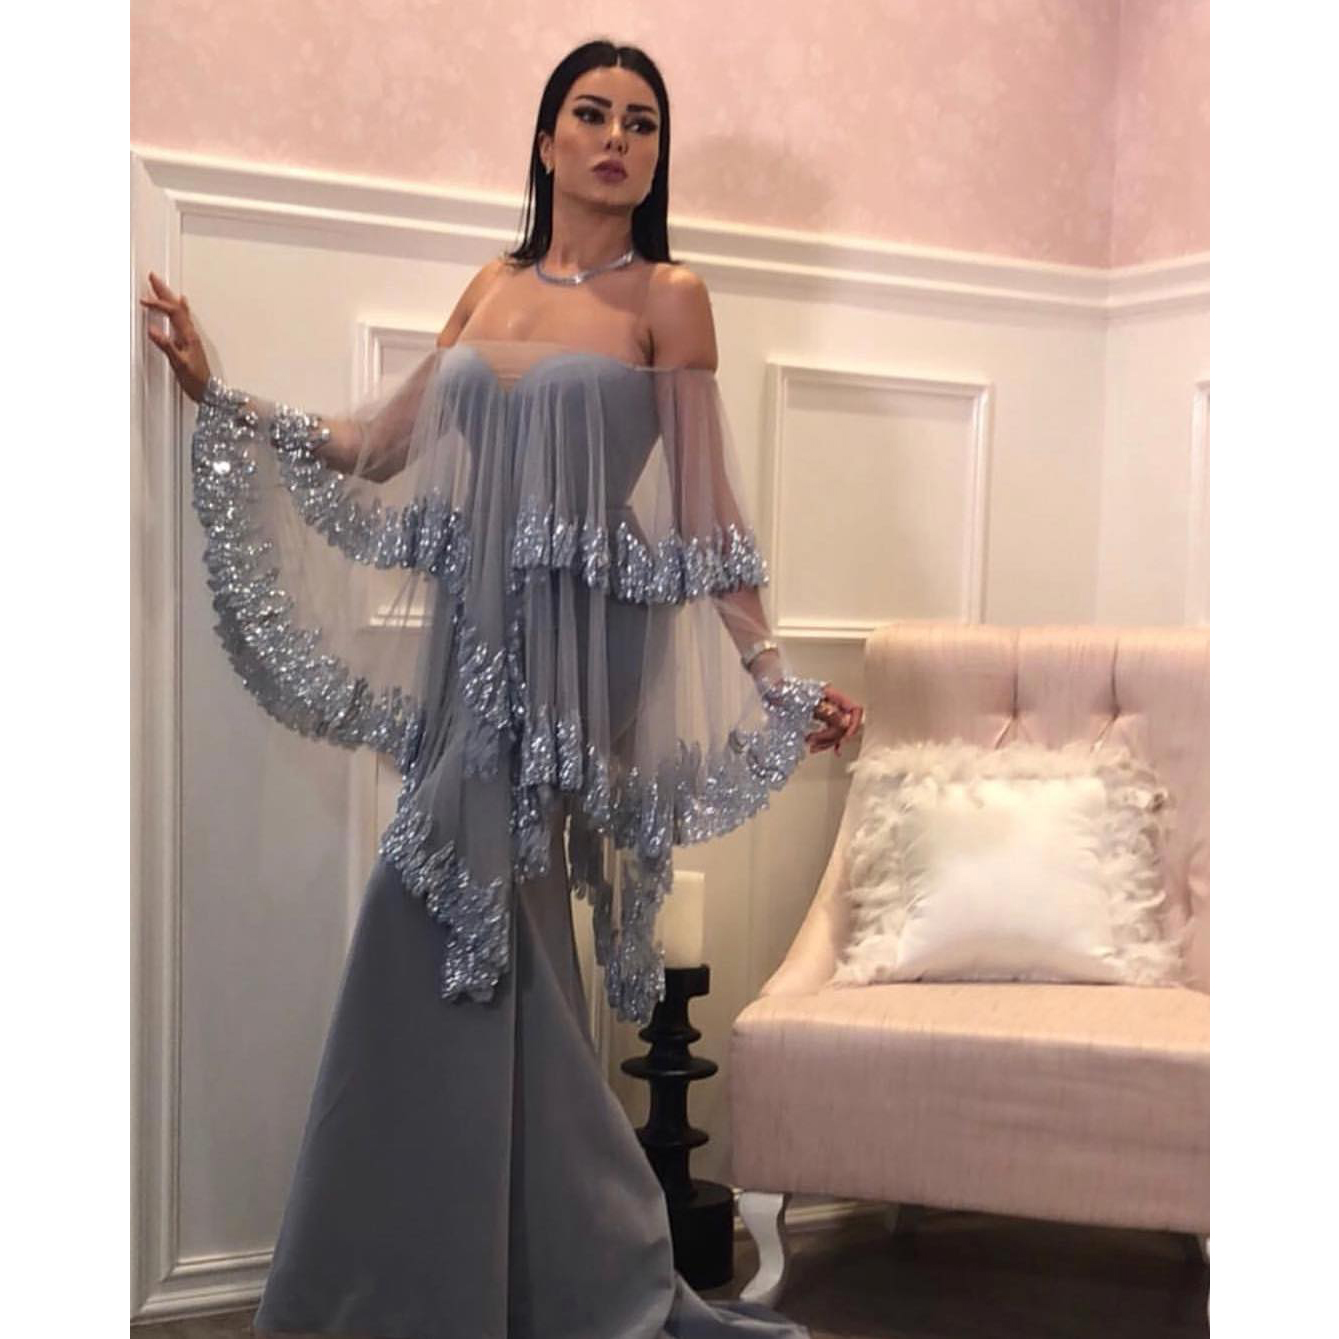 872874e1b8c Gorgeous Grey Mermaid Prom Dress Off Shoulder Tulle Sequined Tulle Cape  Evening Dresses Long Satin Formal Party Gown on Storenvy